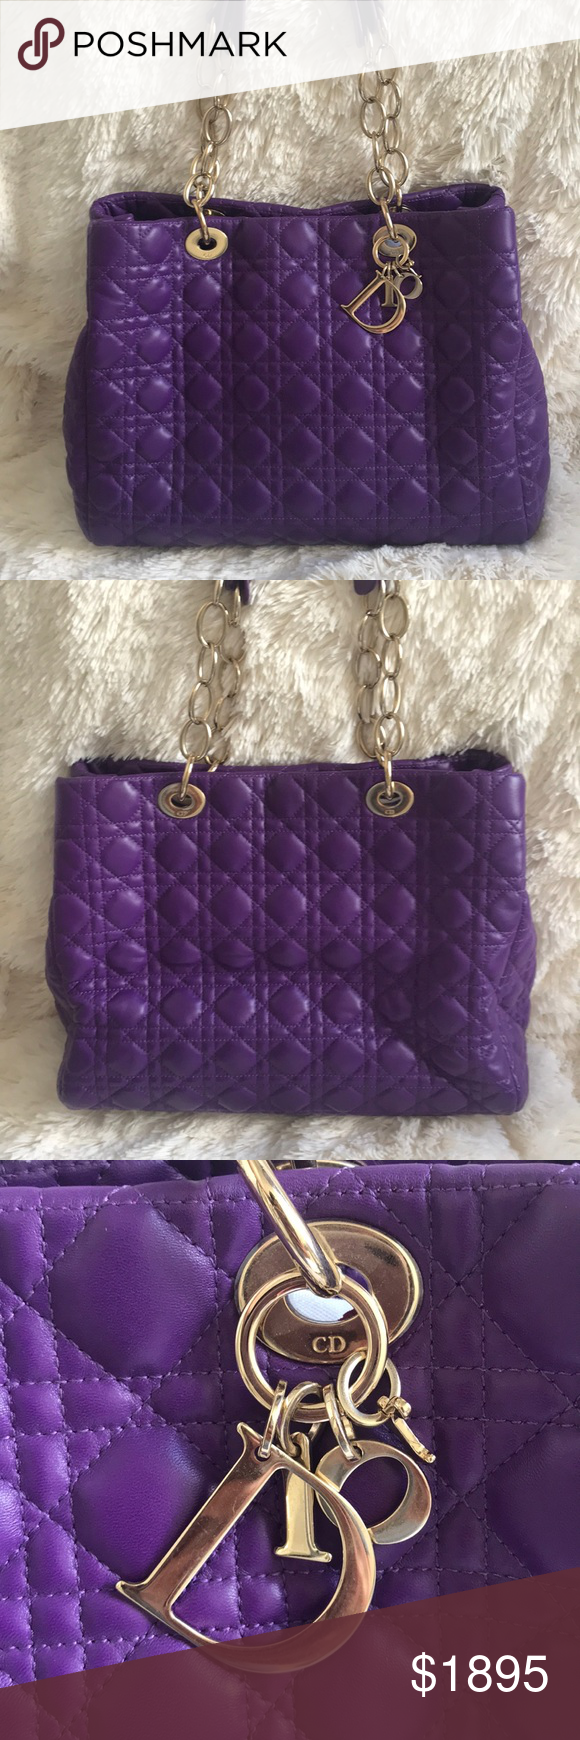 Christian Dior Purple Cannage Quilted Tote Bag Christian Dior Purple Soft  Chain Cannage Quilted Lambskin Large 931483b492f09